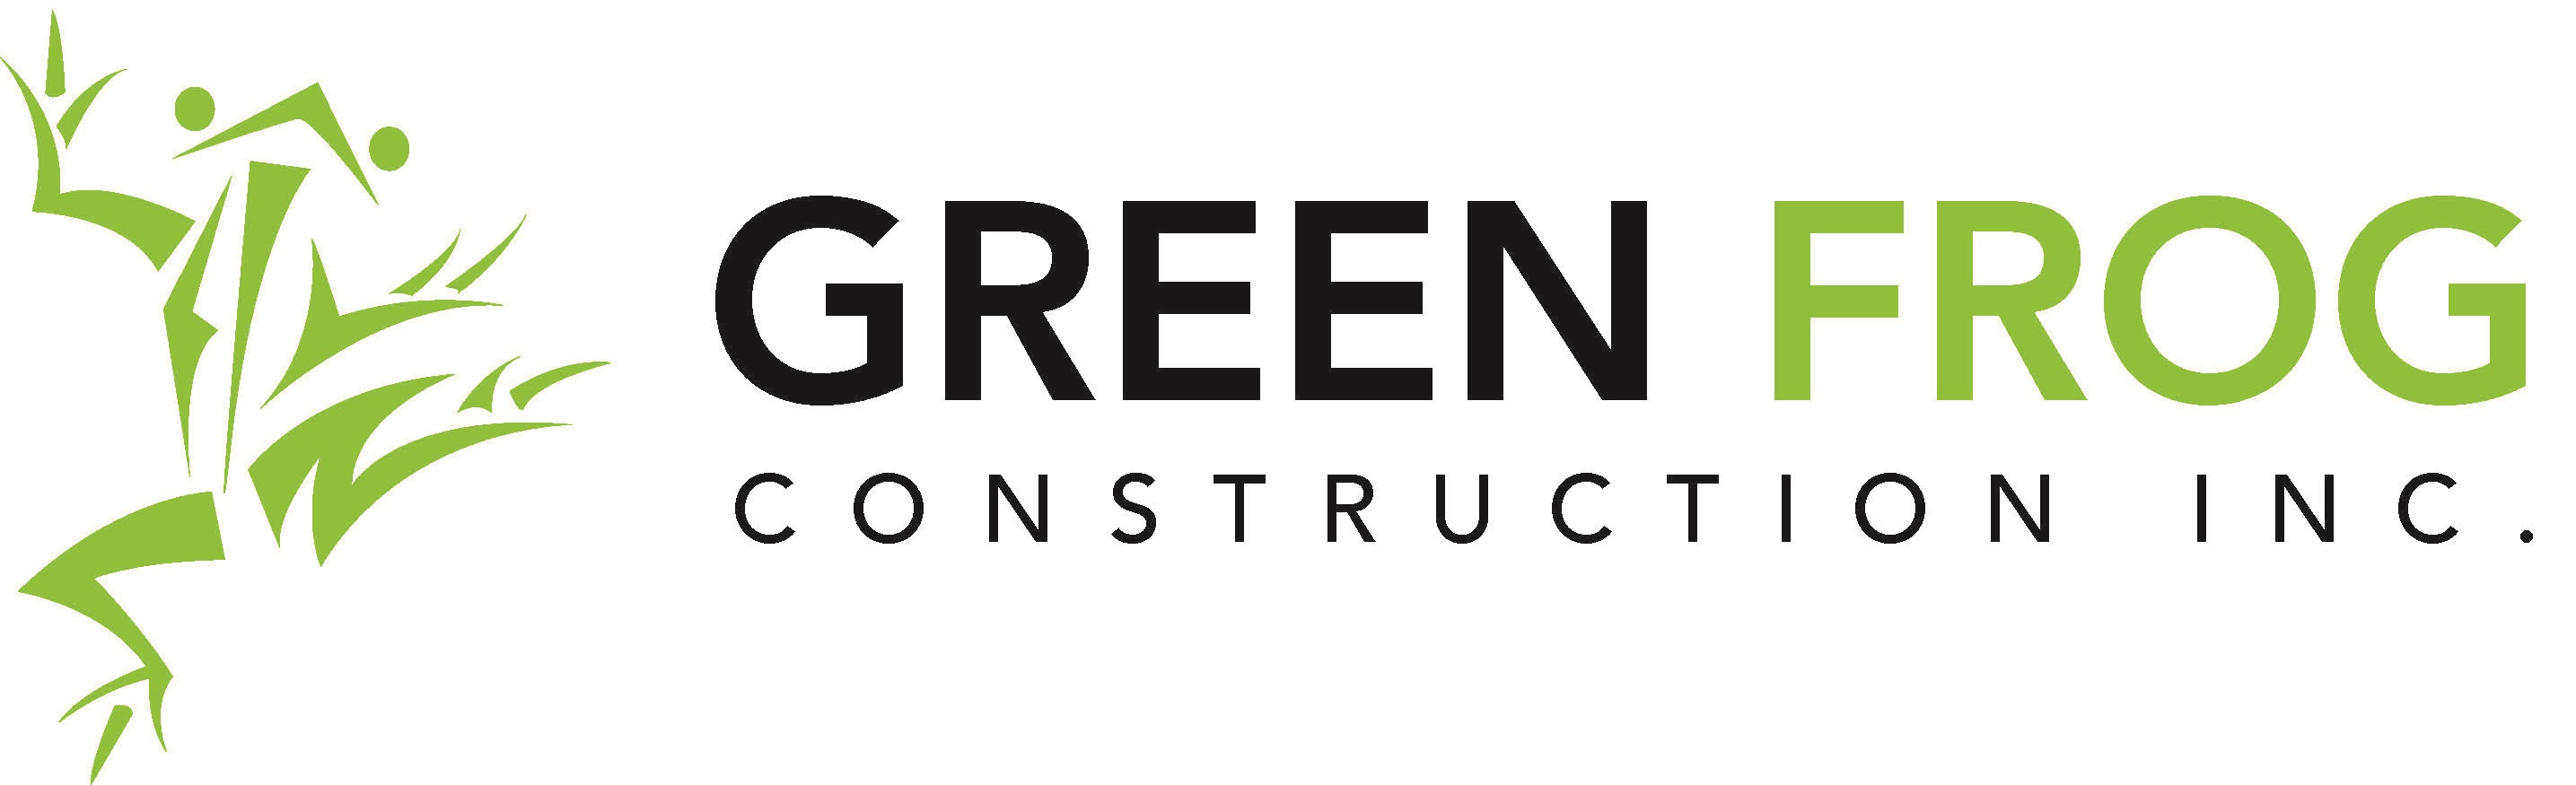 Greenfrog Construction 6jul18